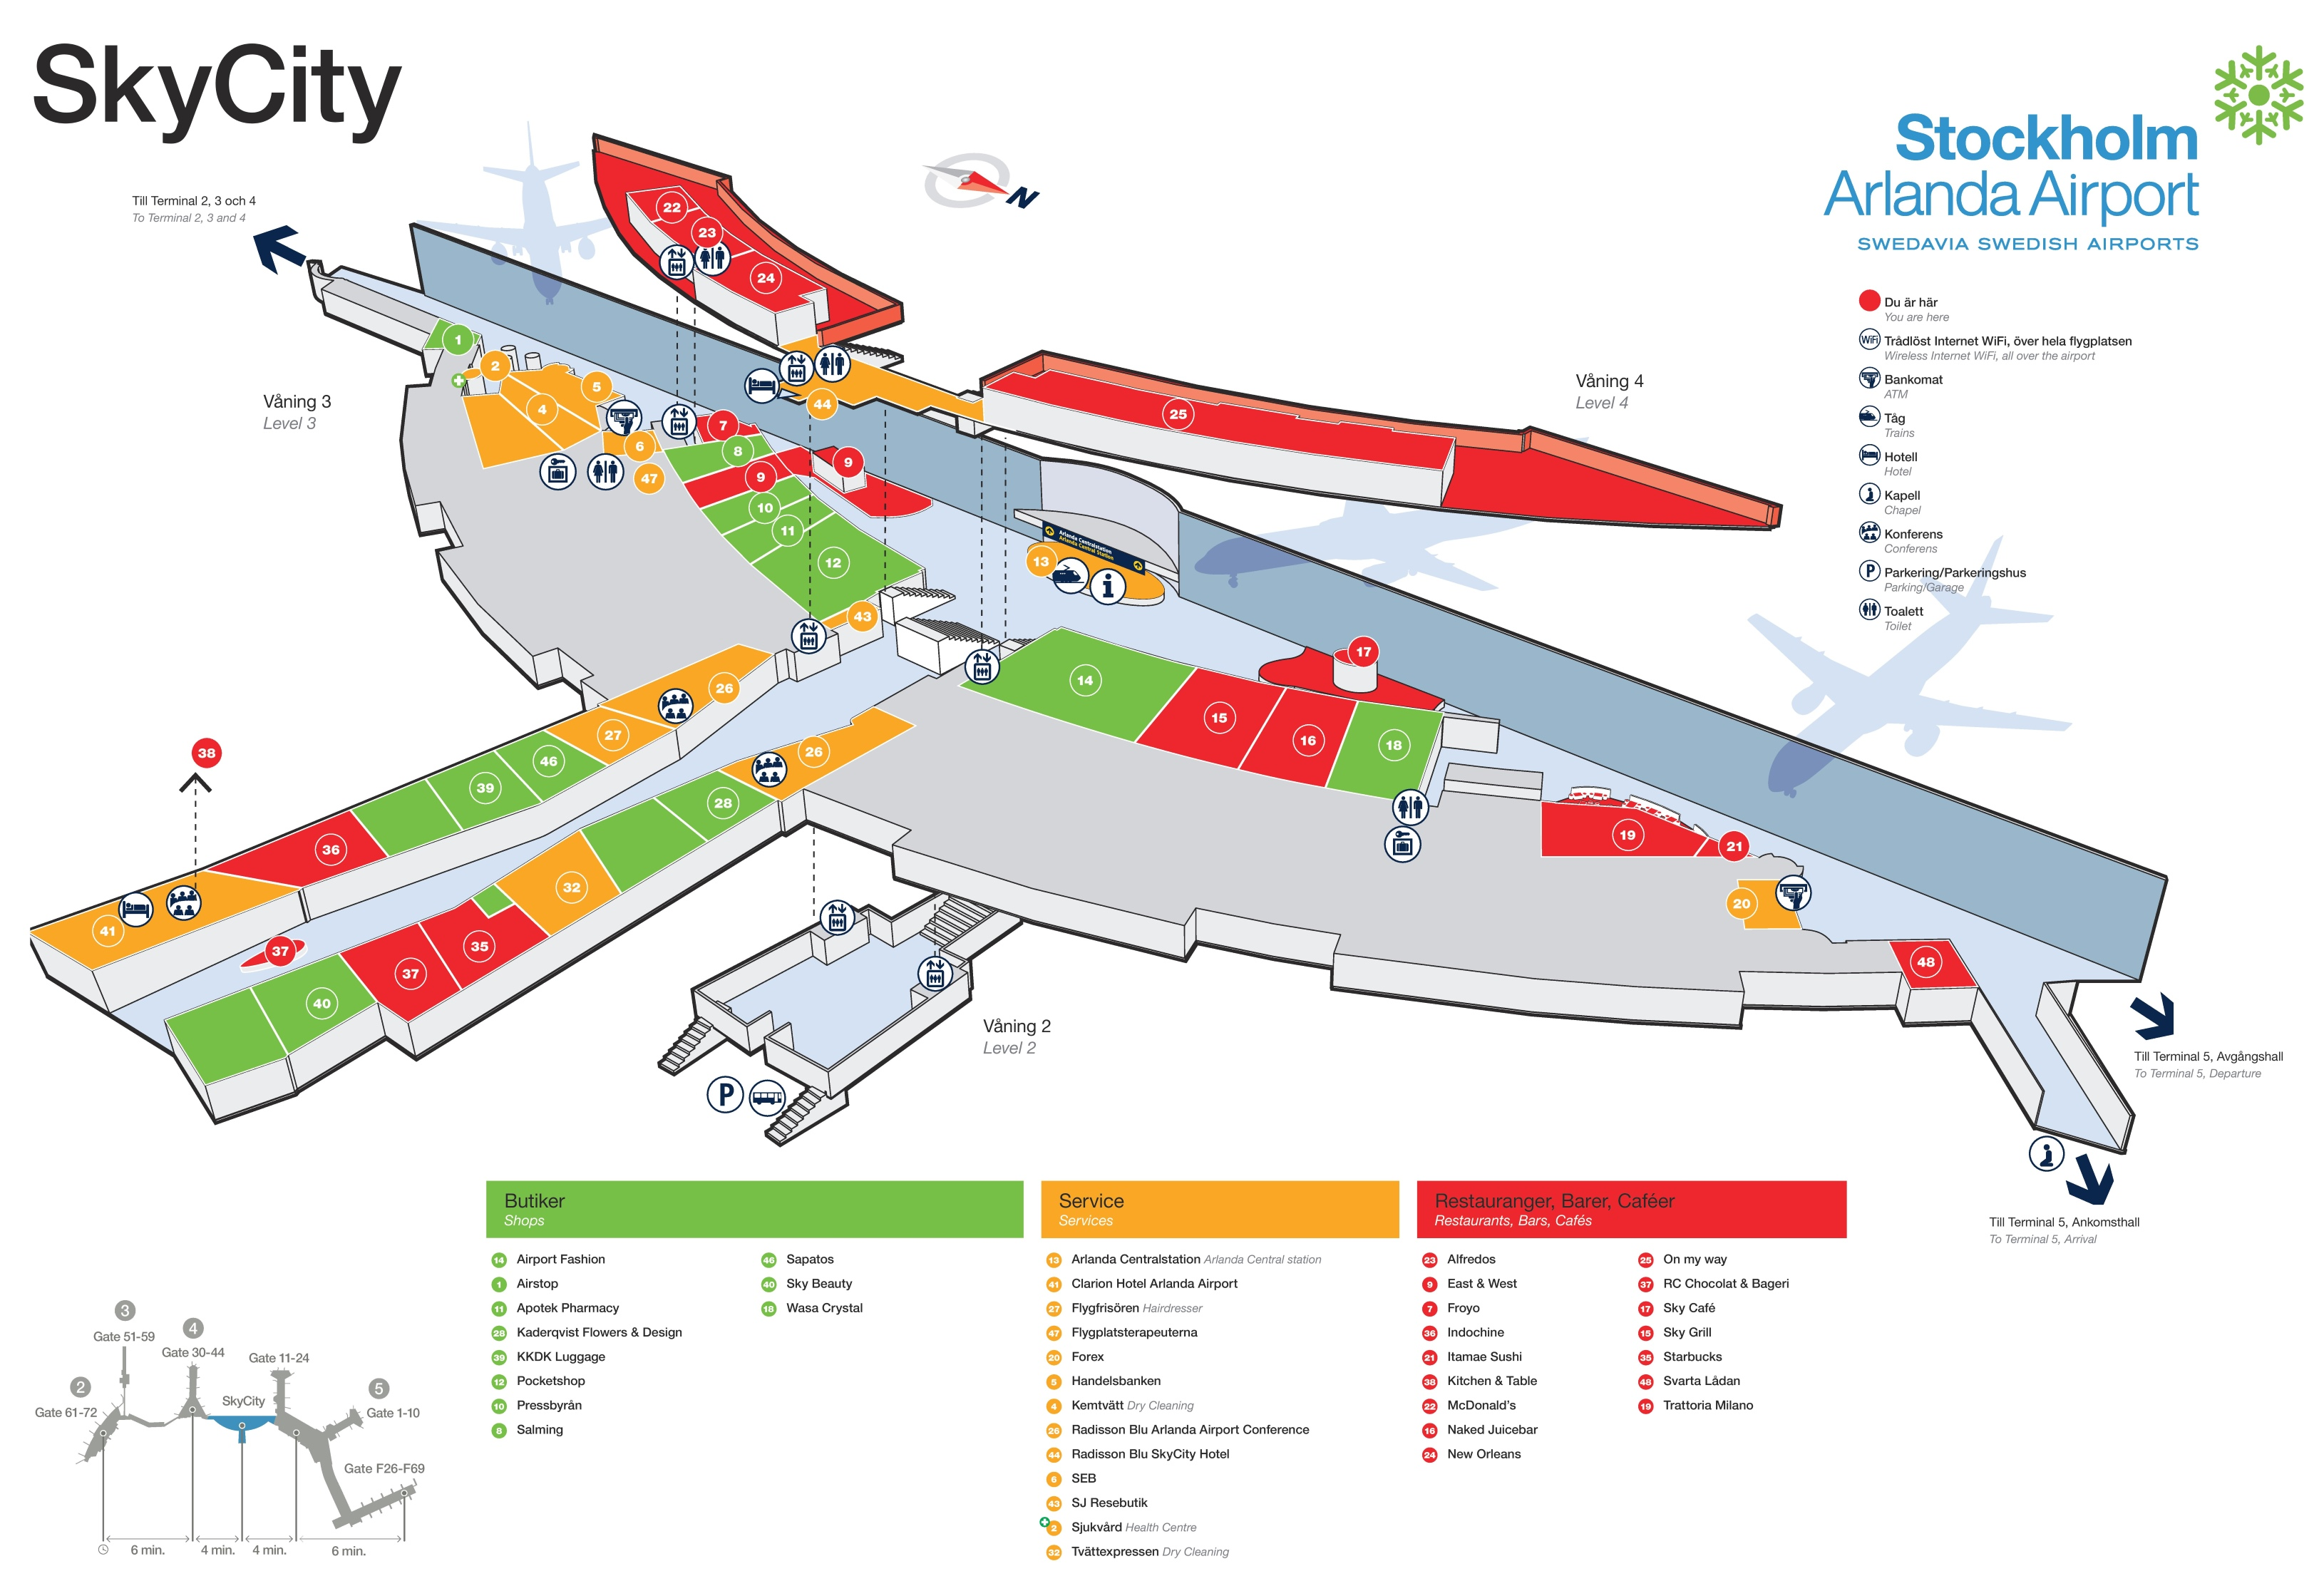 large map of switzerland html with Stockholm Airport Skycity Map on 1025 likewise Ostell1814 likewise 2784 additionally Stockholm Airport Skycity Map as well Antalya Airport Terminal 1 Map.